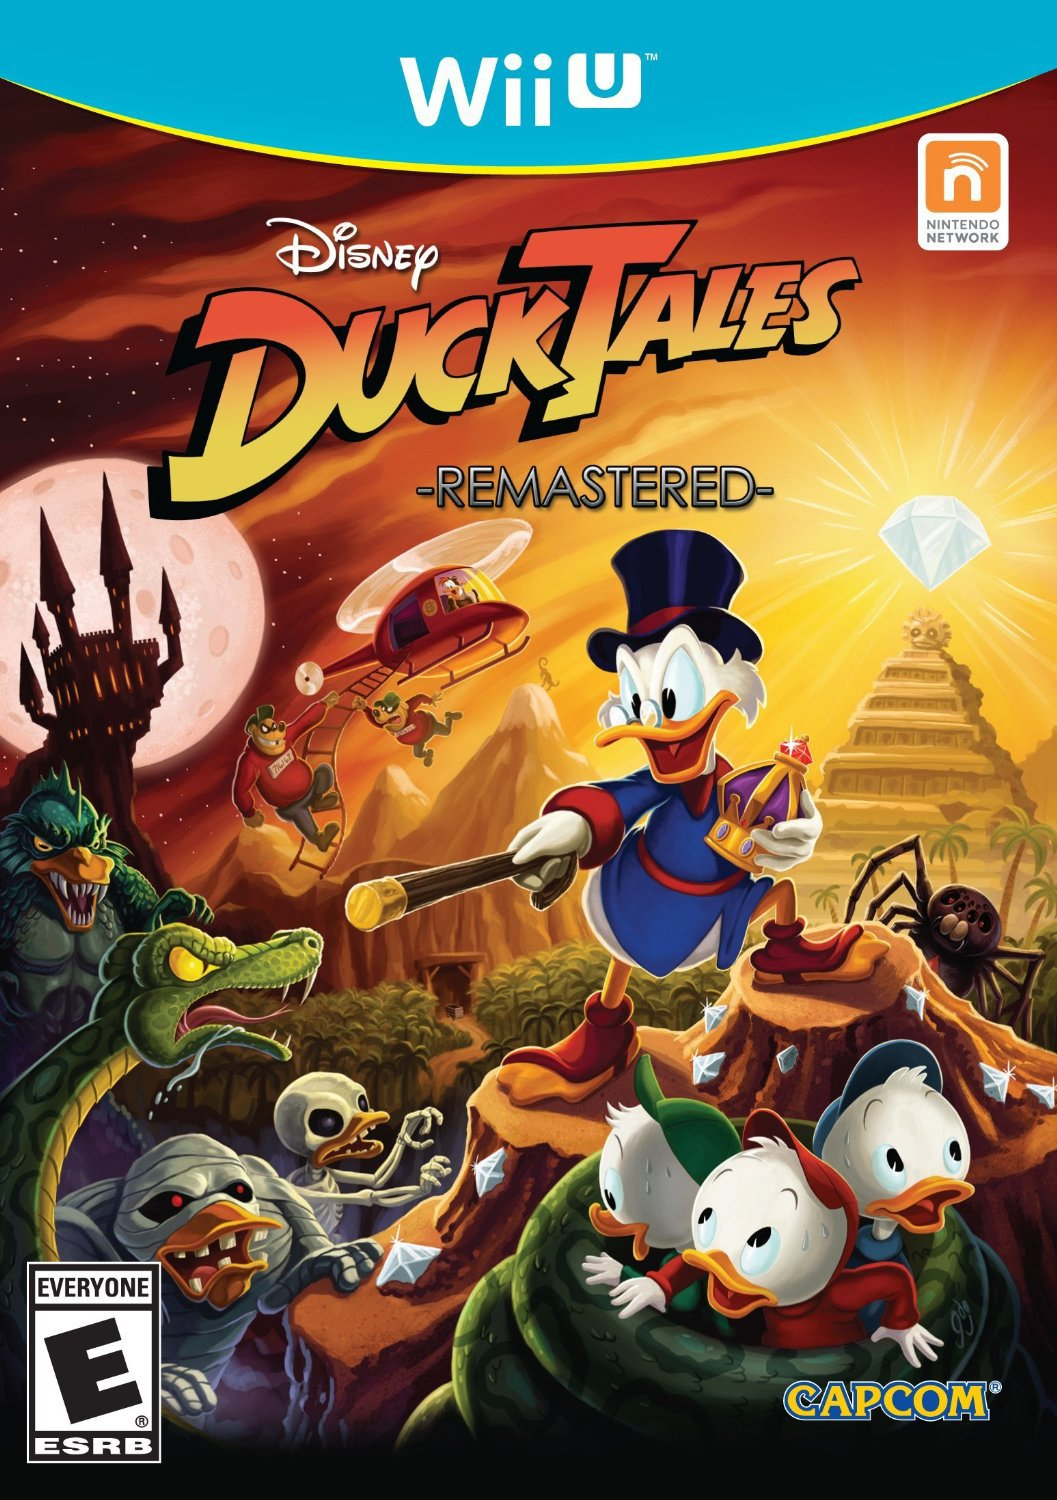 DuckTales Remastered Wii U Physical Game Disc US